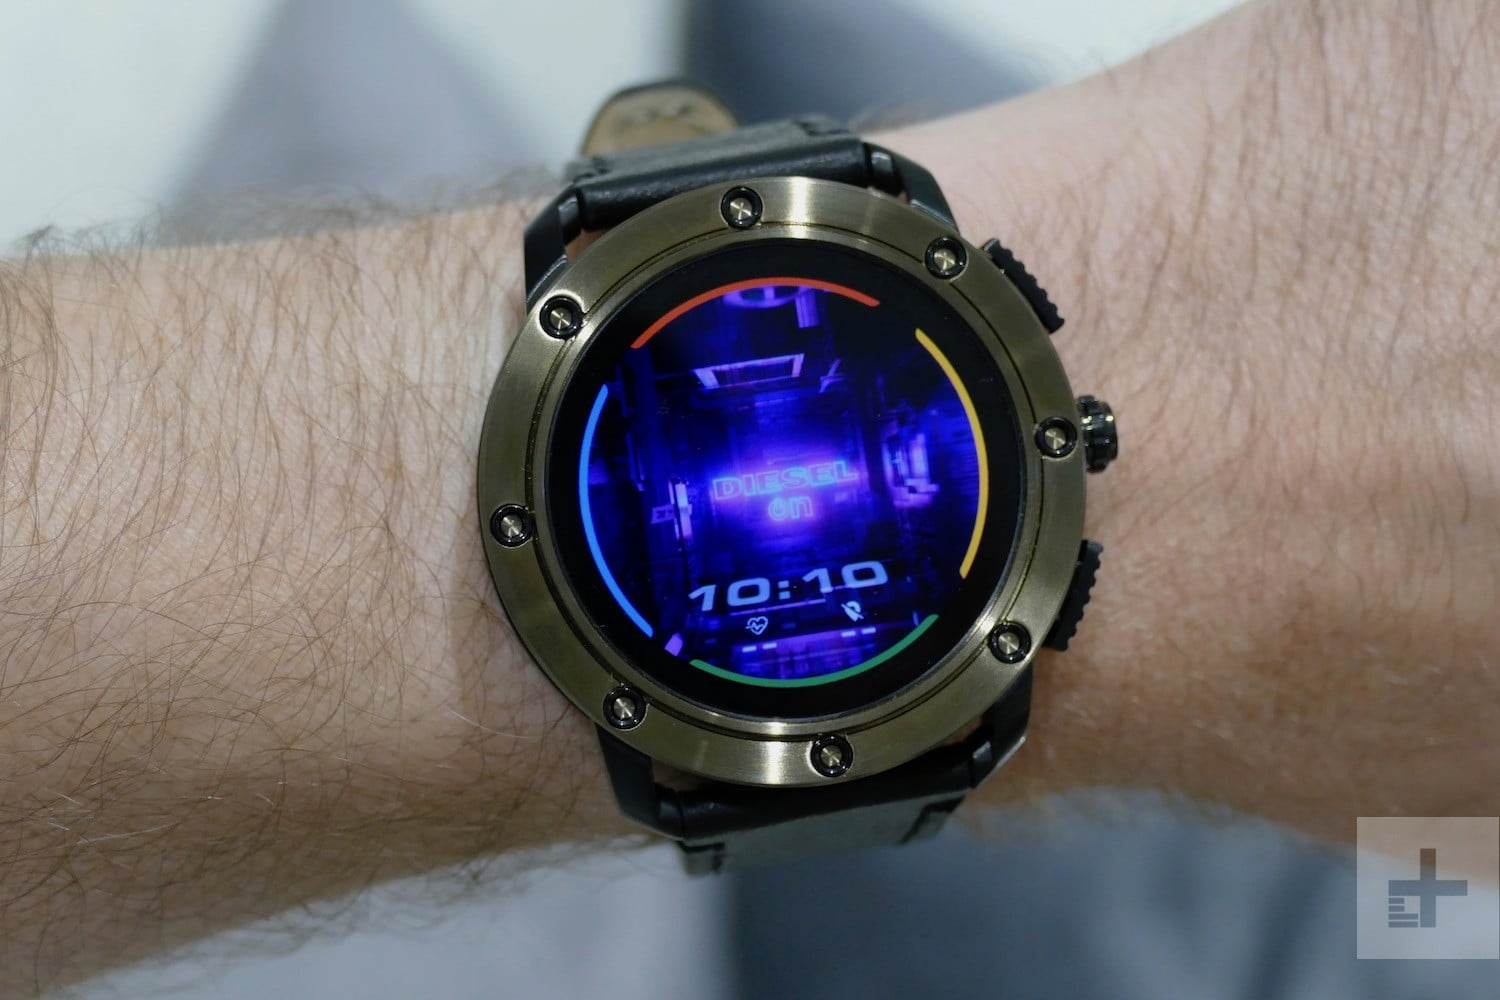 Diesel On Axial hands-on review: An undeniably wild and stunning smartwatch